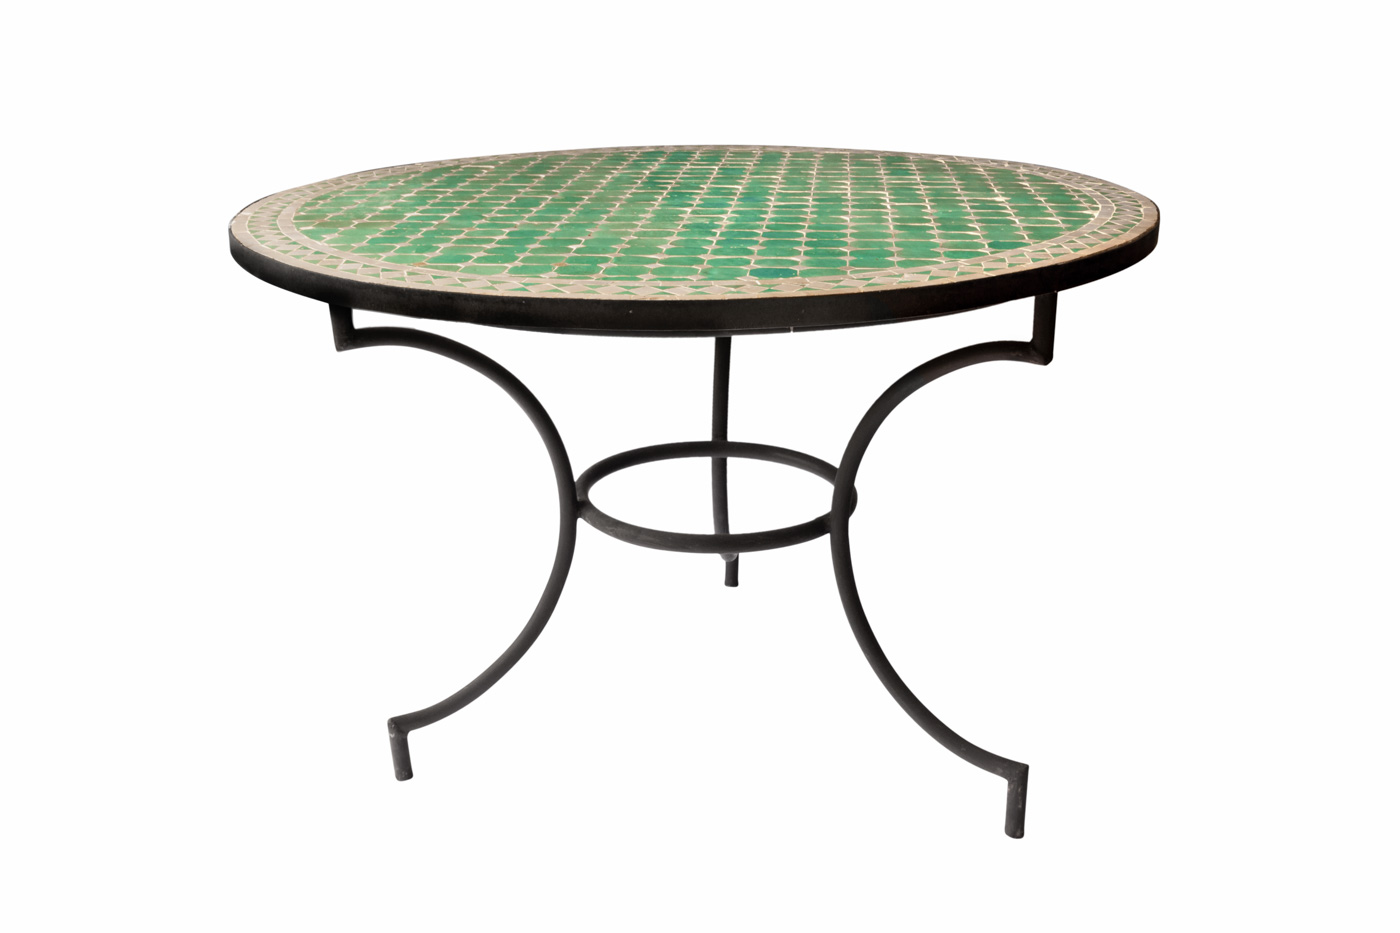 Traditional Moroccan mosaic table, green - white